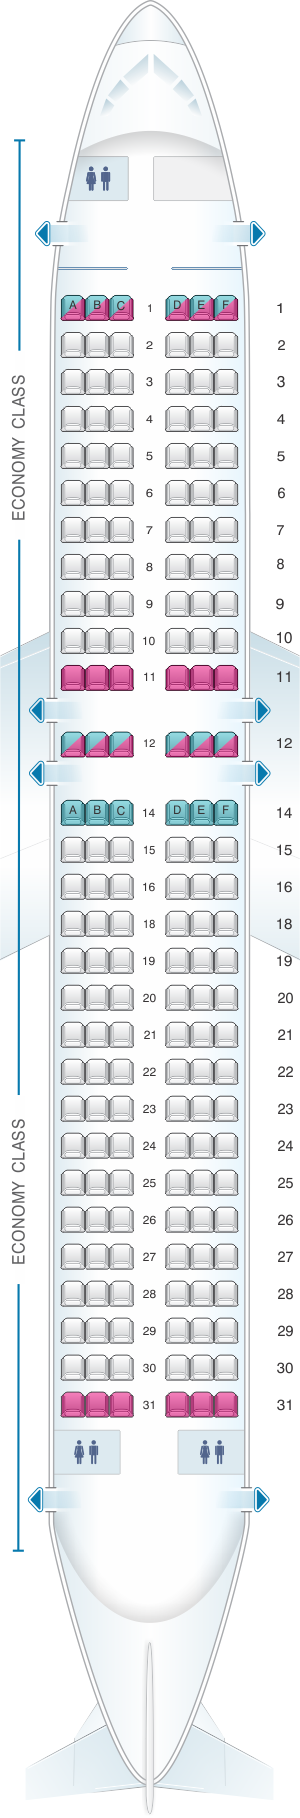 Seat map for Bulgaria Air Airbus A320 all economy